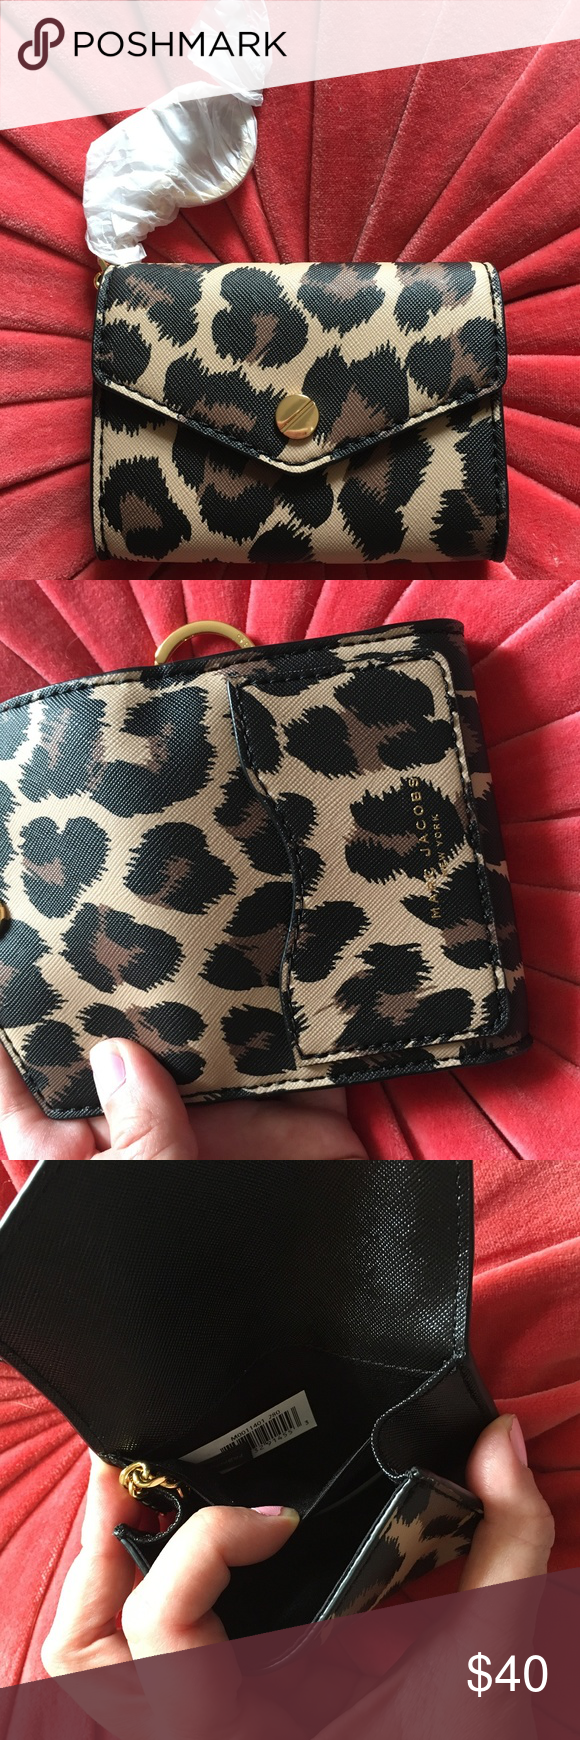 Marc Jacobs Leopard Print Coin Purse Card Holder | Pinterest